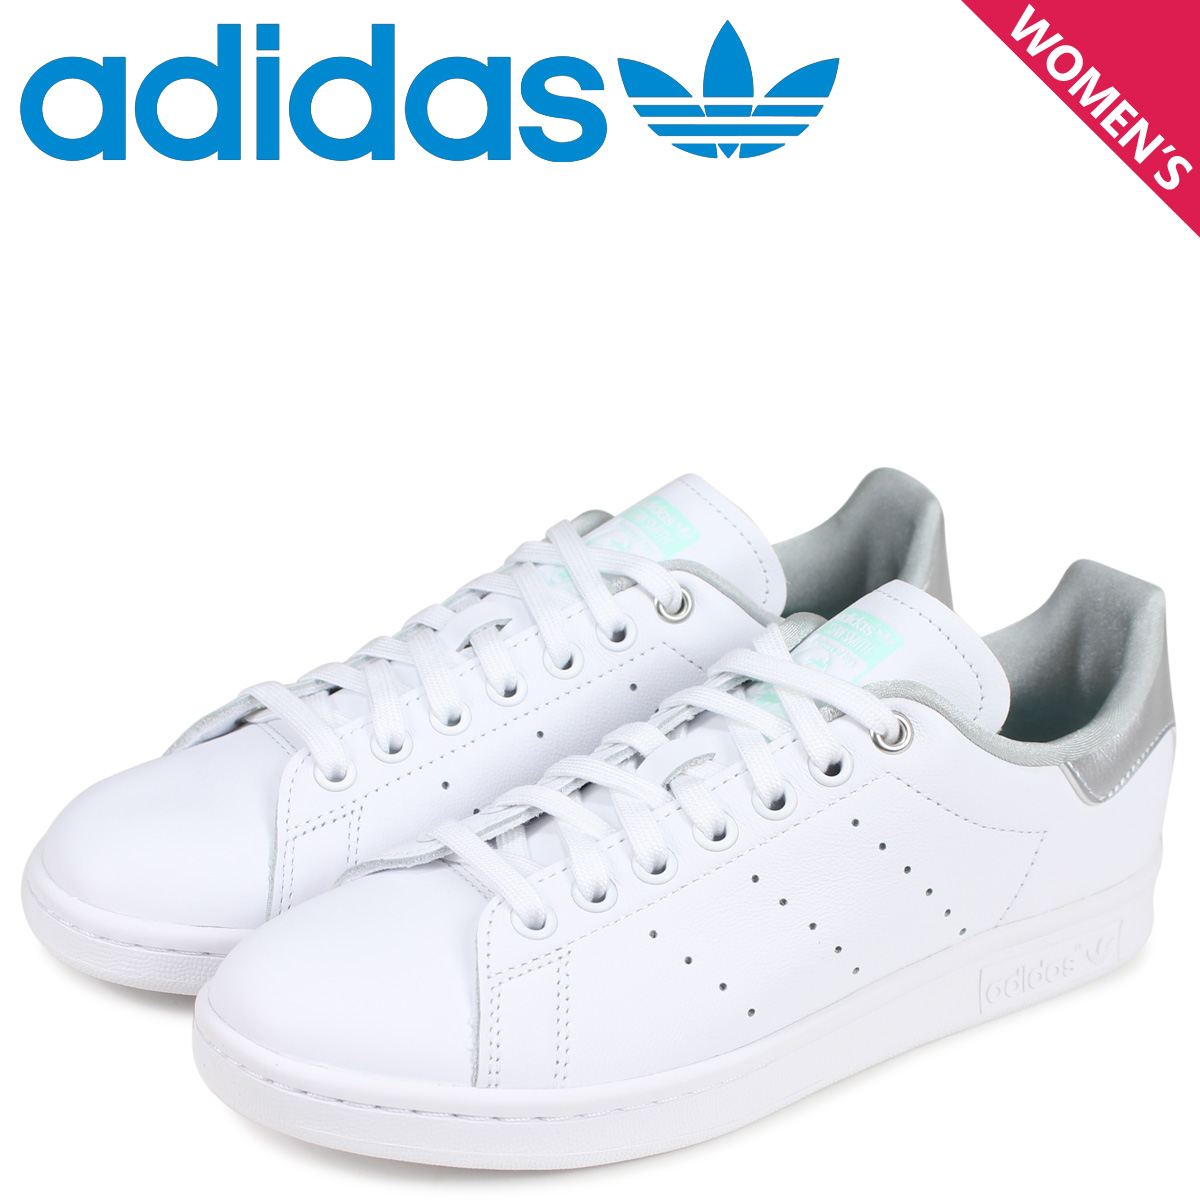 89bb15c07236f adidas Originals Adidas originals Stan Smith sneakers Lady s STAN SMITH W  white white G27907  load planned Shinnyu load in reservation product 4 19  ...